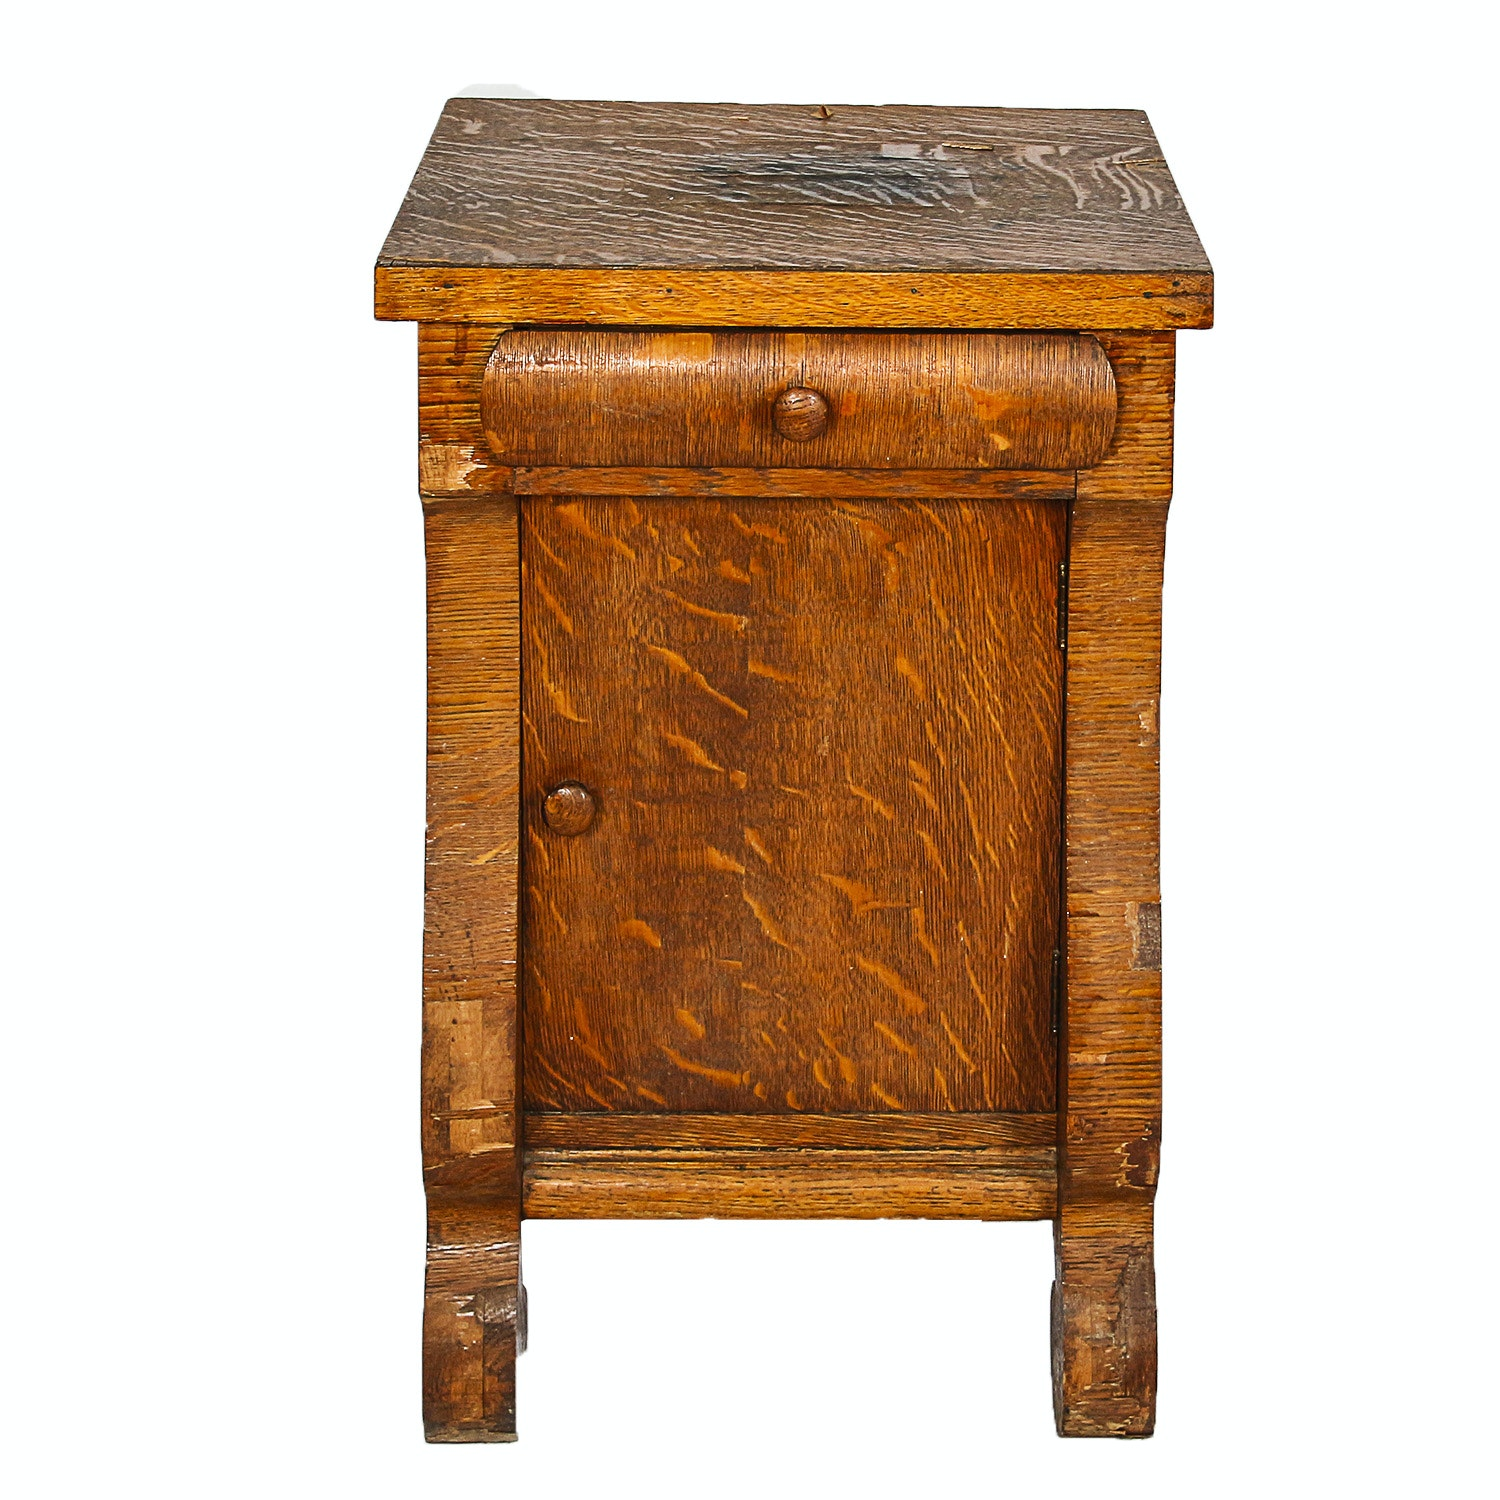 Antique Quatersawn Oak Side Table